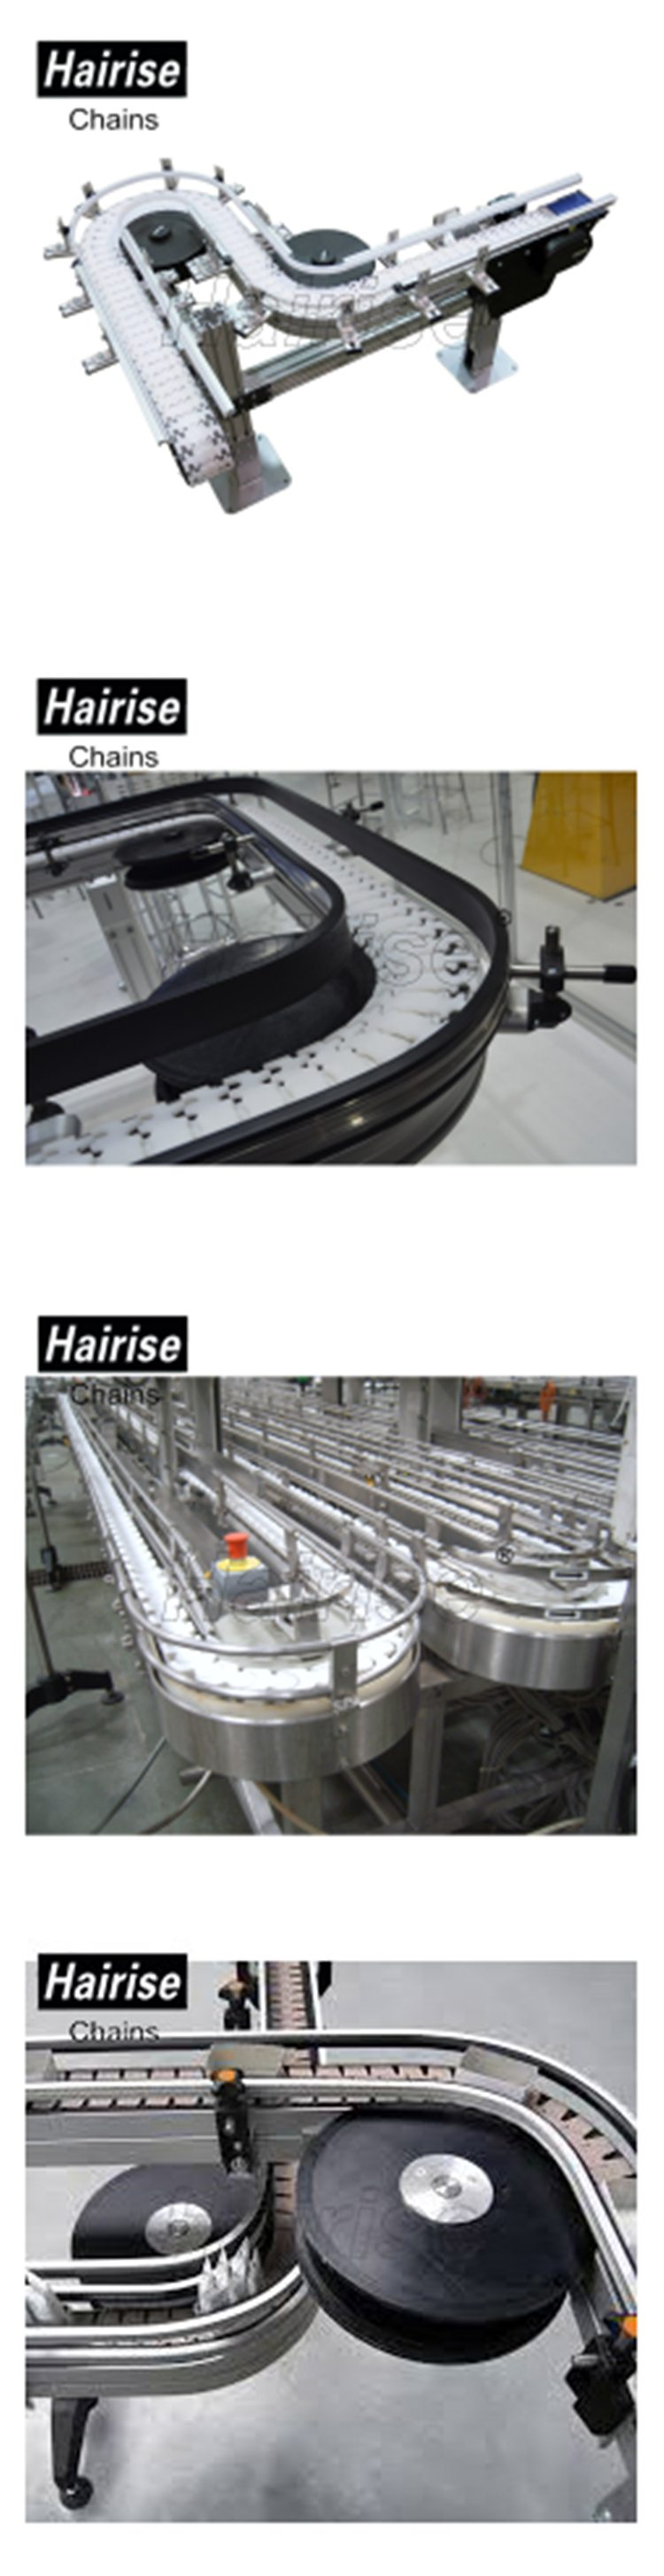 multiflex-chain-curved-conveyor